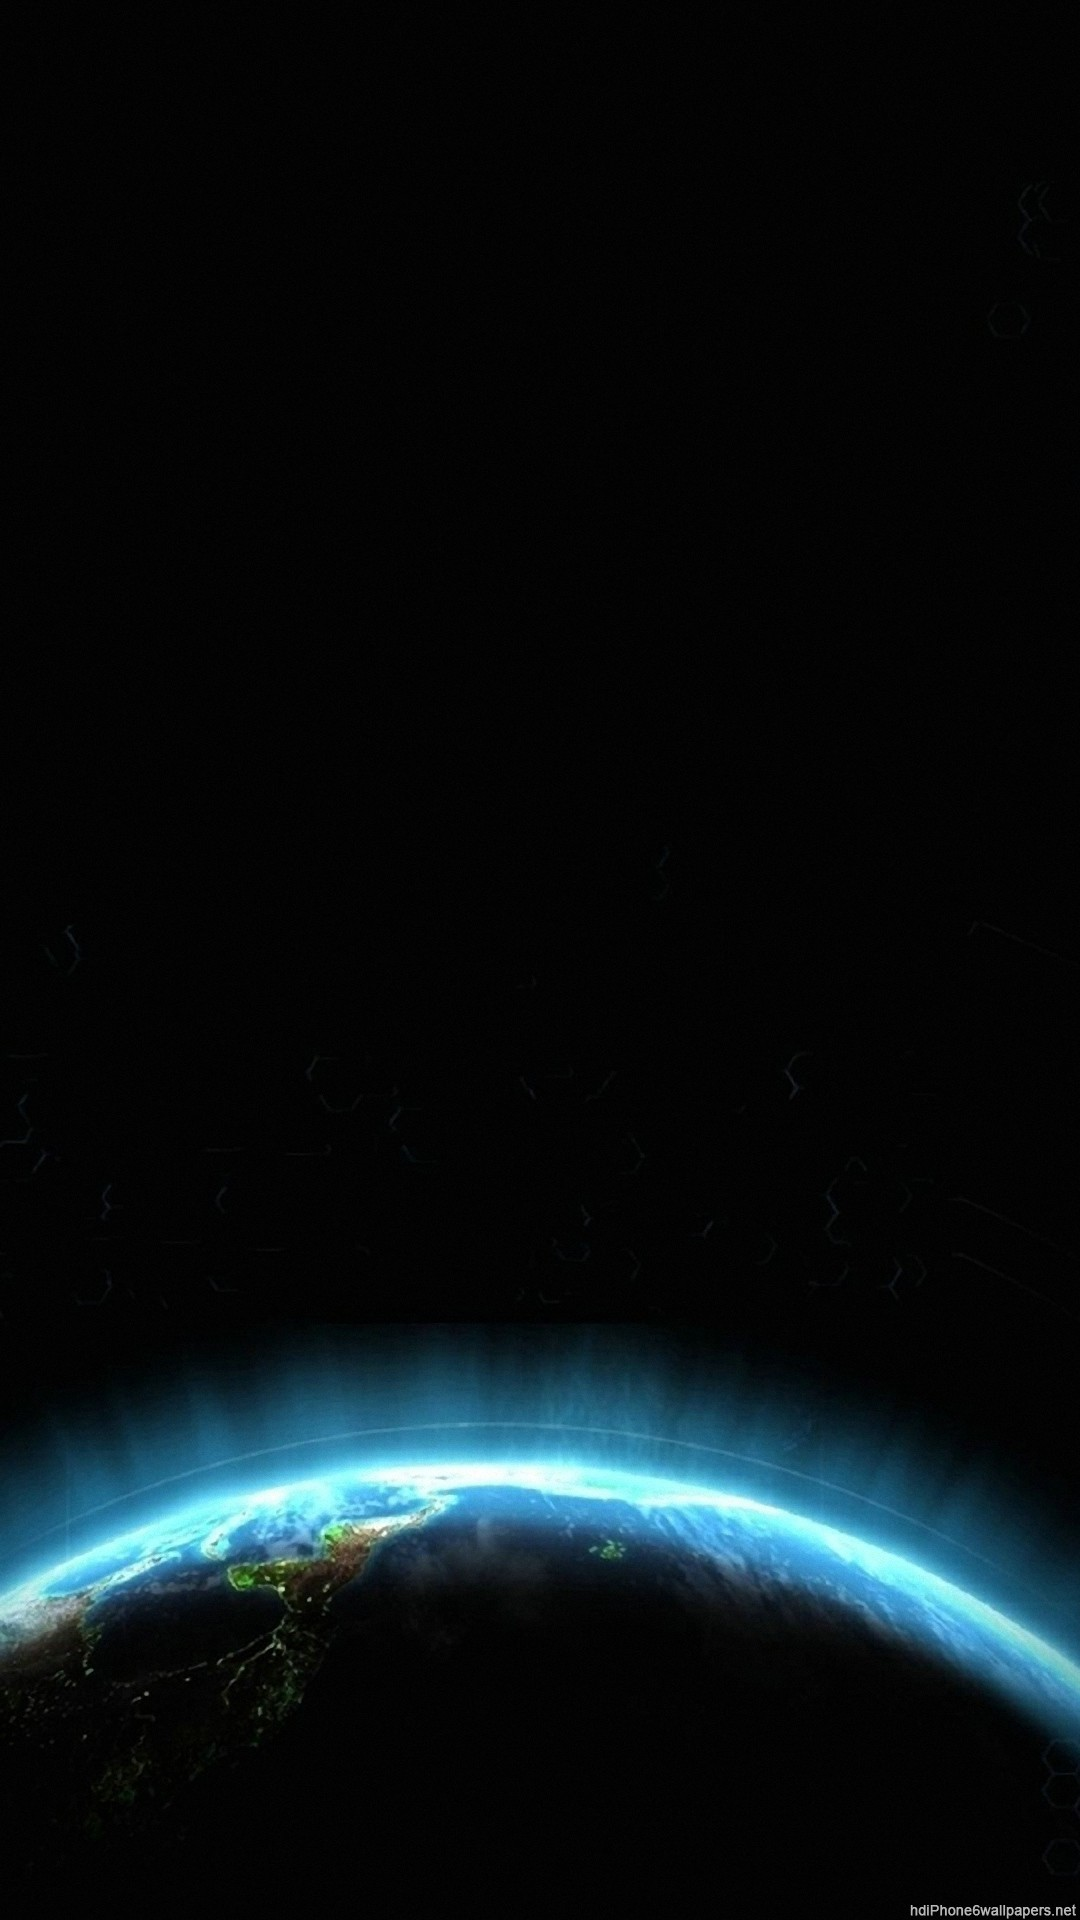 Planets wallpapers hd 79 images - Iphone 6 space wallpaper download ...